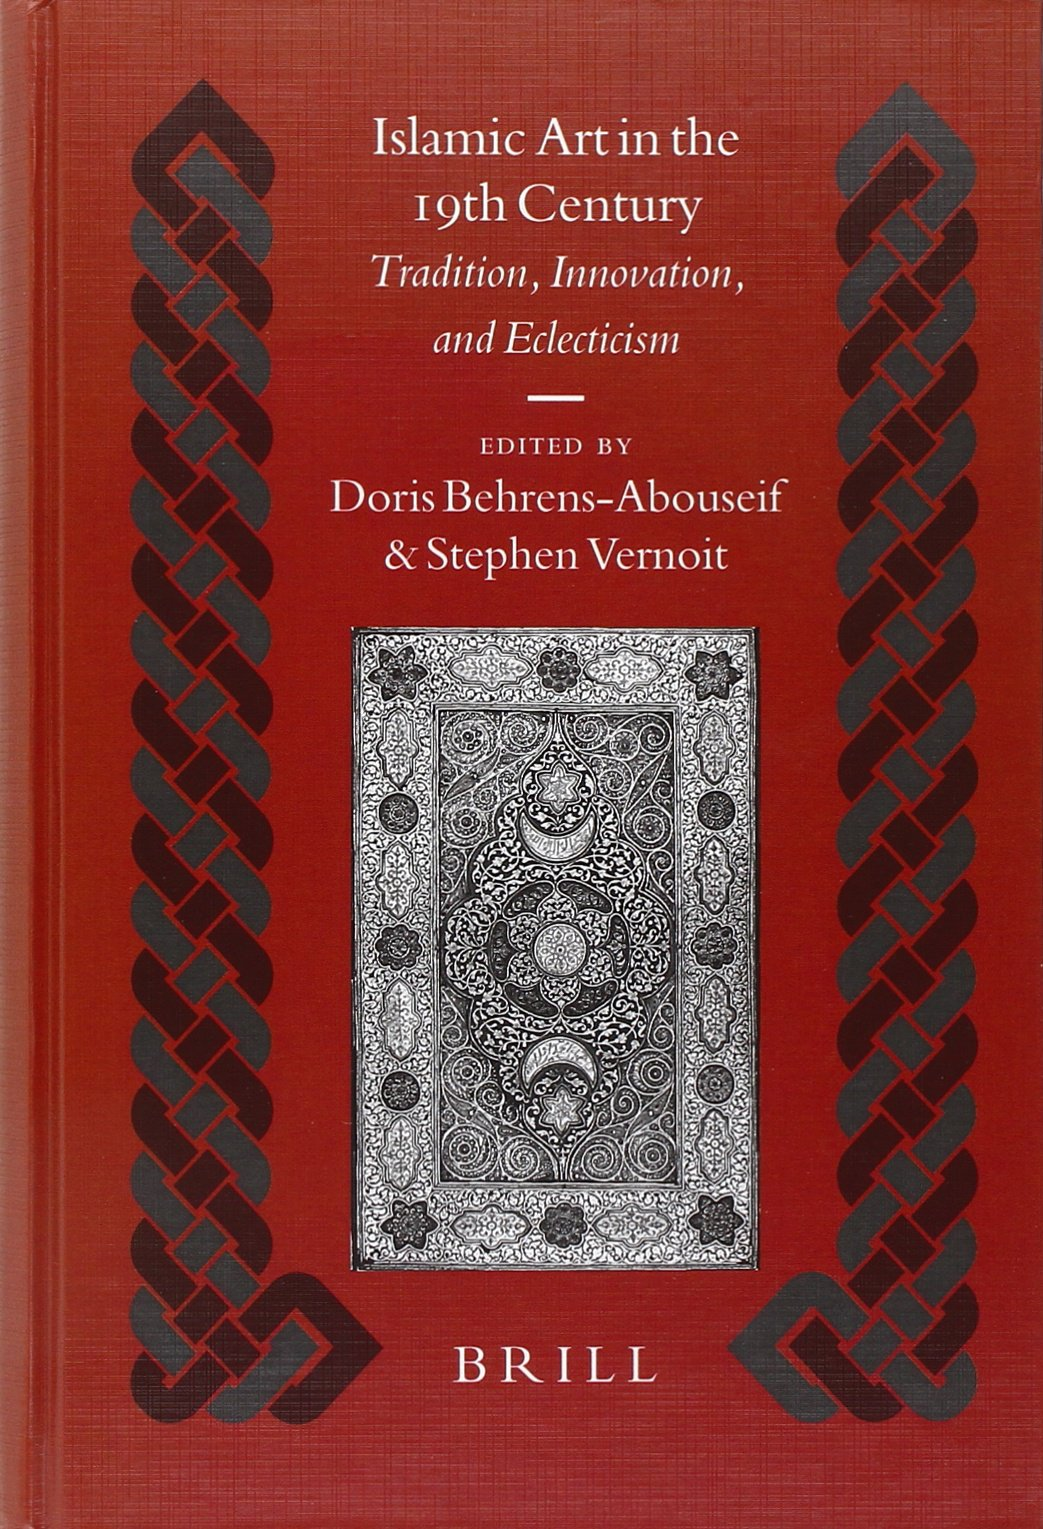 Read Online Islamic Art in the 19th Century: Tradition, Innovation, And Eclecticism (Islamic History and Civilization) (Islamic History & Civilization) PDF